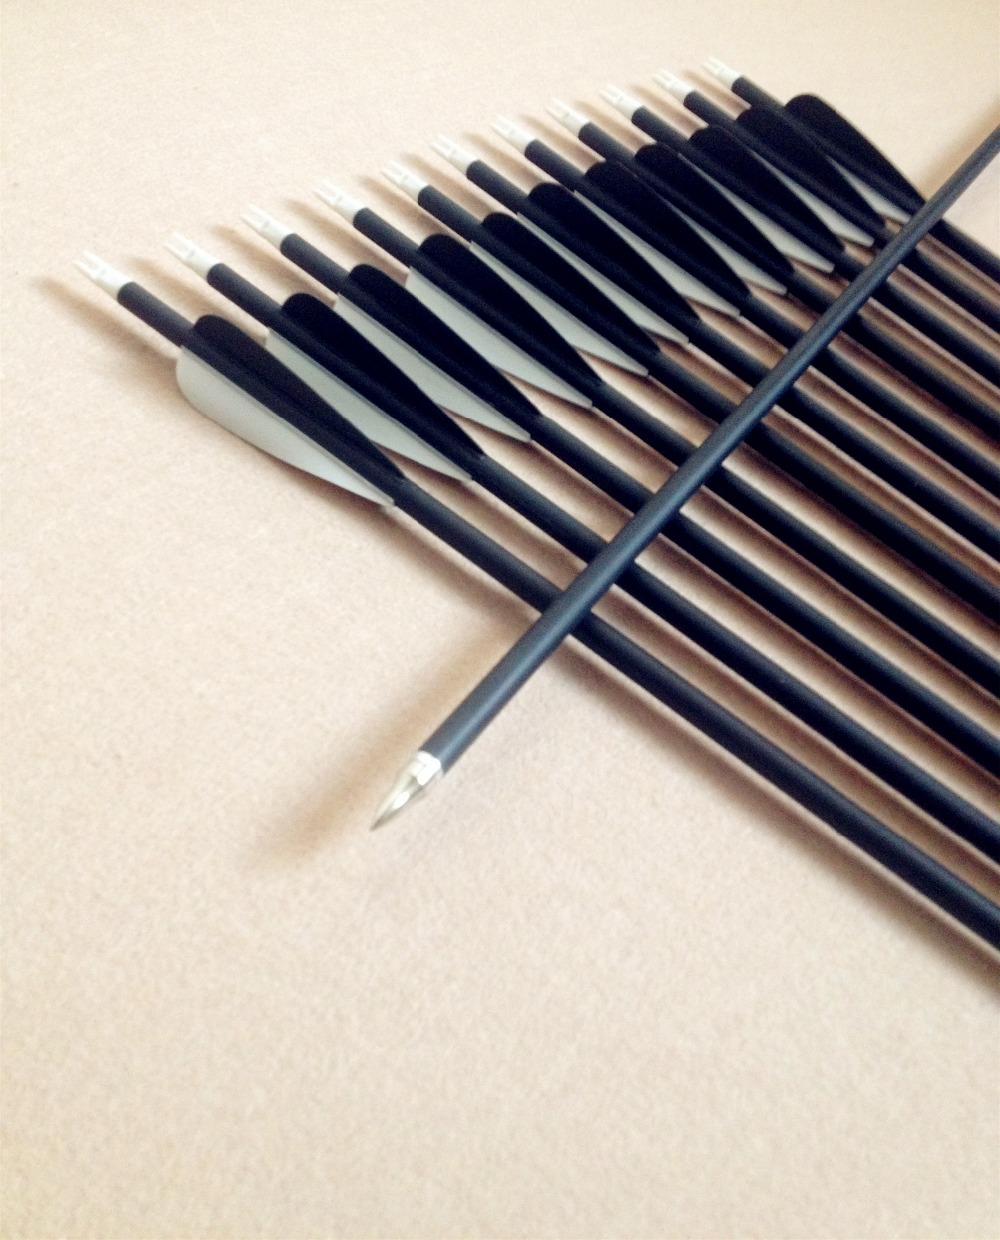 6/12/24PCS High Quality Carbon Arrows Black And White Arrow Archery Hunting Contest For Recurve Bow